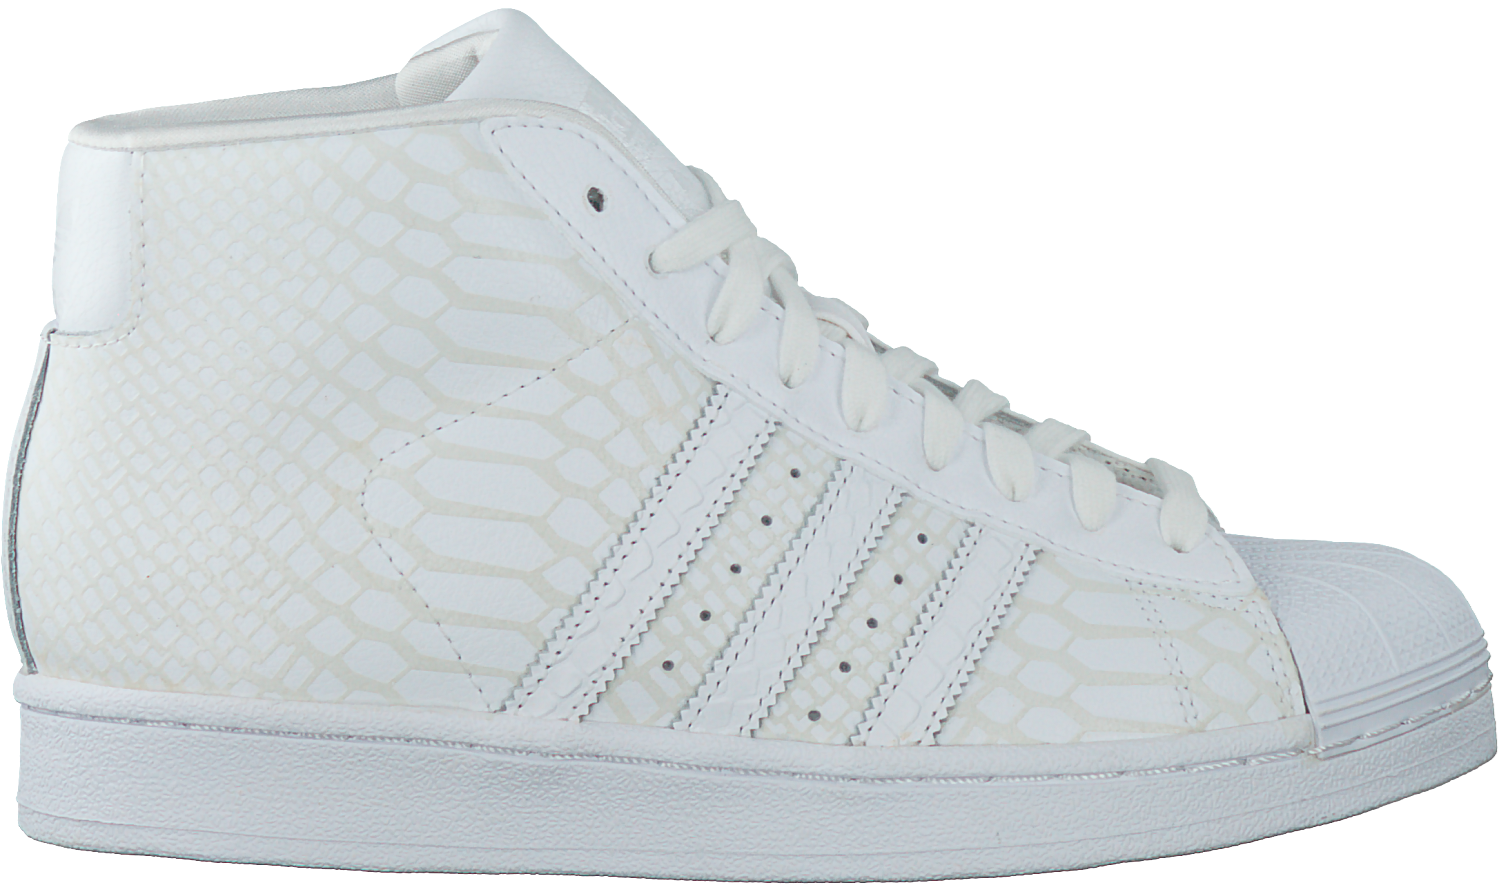 752def95f15 Witte ADIDAS Sneakers PRO MODEL DAMES - large. Next